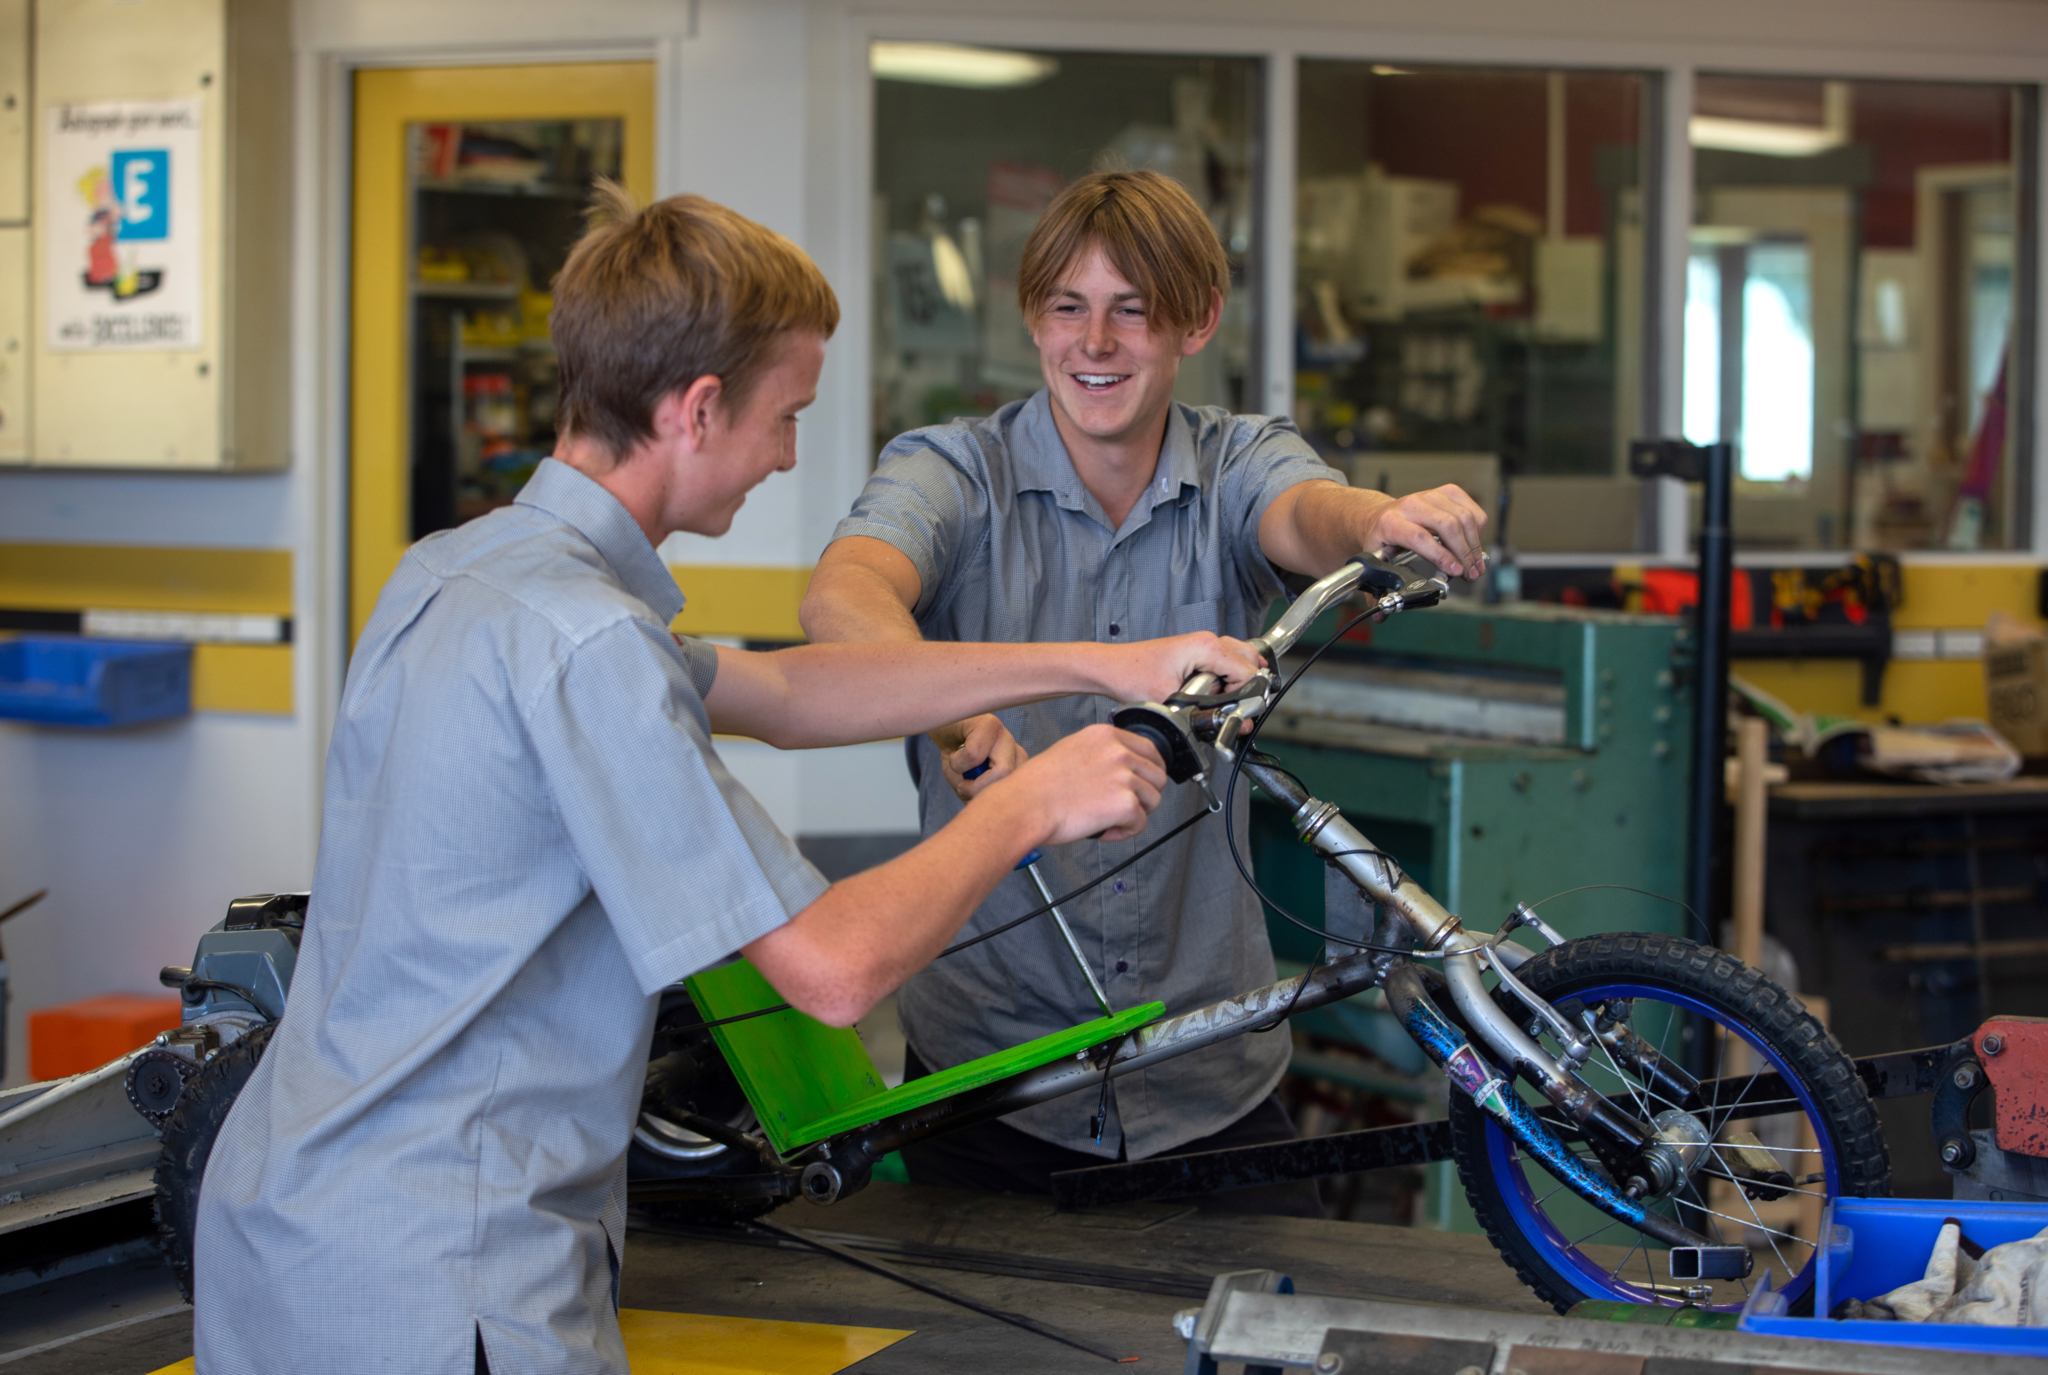 Picture by Tim Cuff 17 March 2021 - Nayland College prospectus and website imagery, Nelson, New Zealand